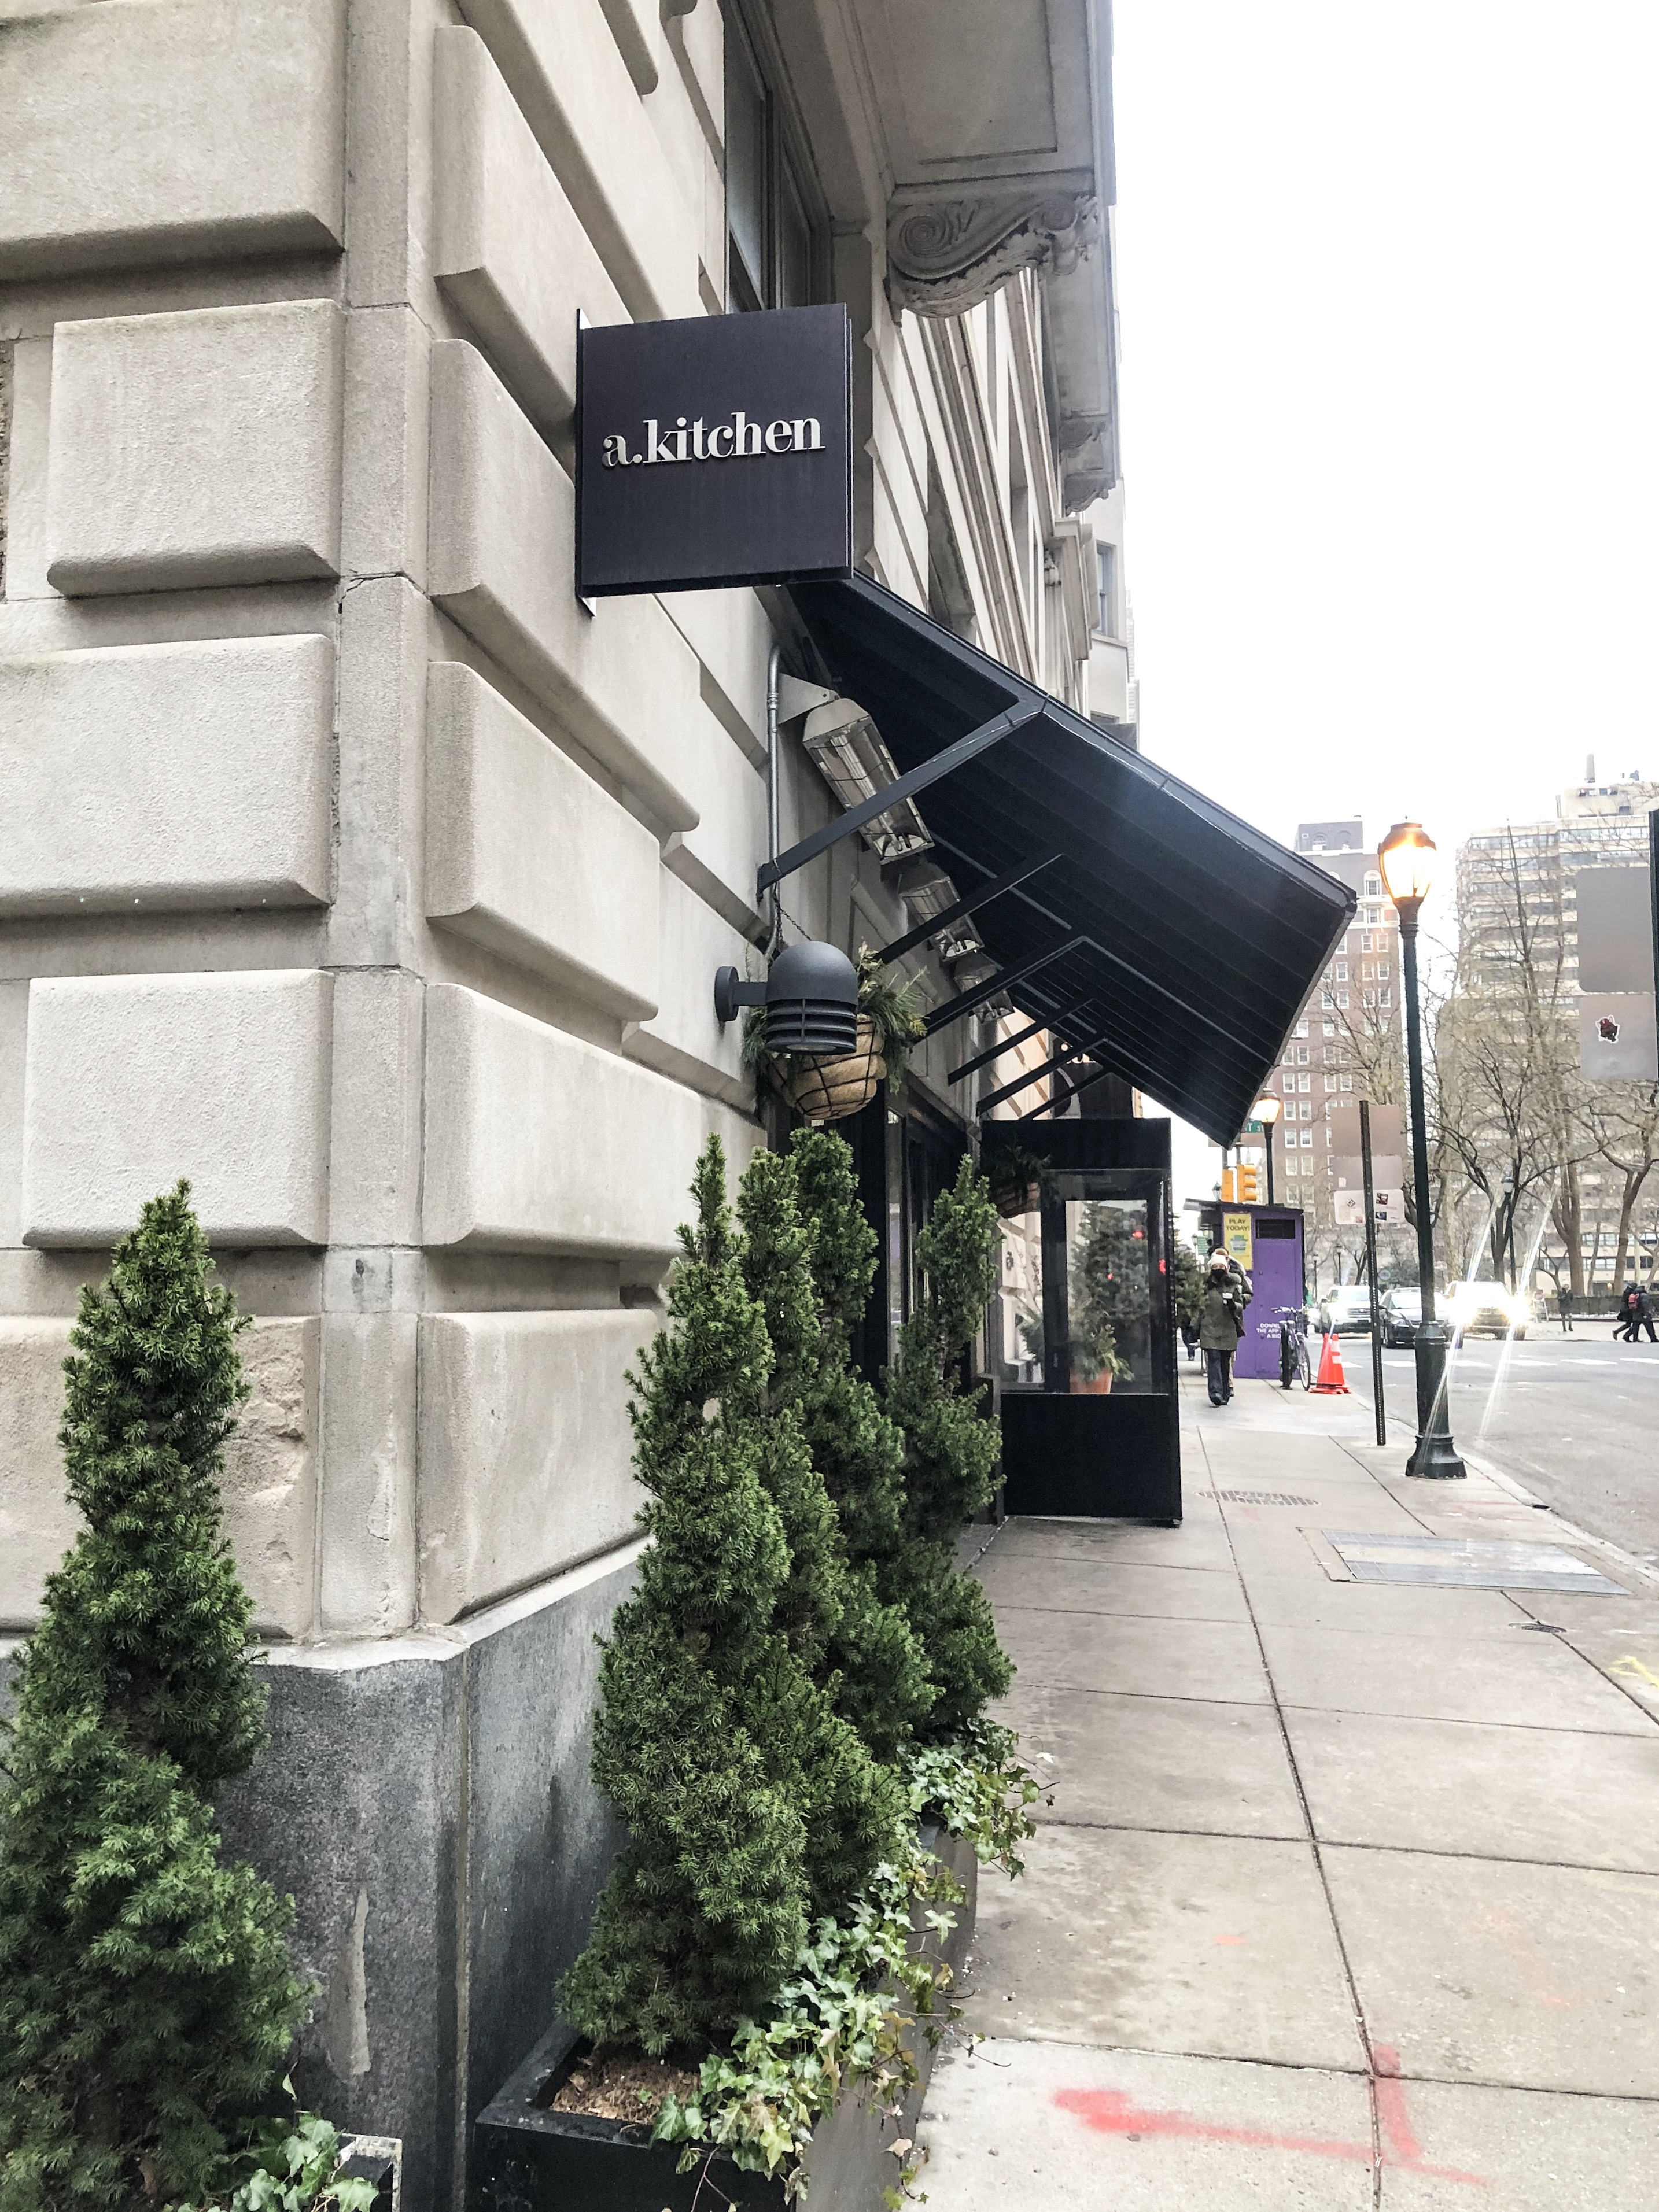 Lifestyle Blogger Chocolate & Lace shares her visit to Philly's a. kitchen restaurant